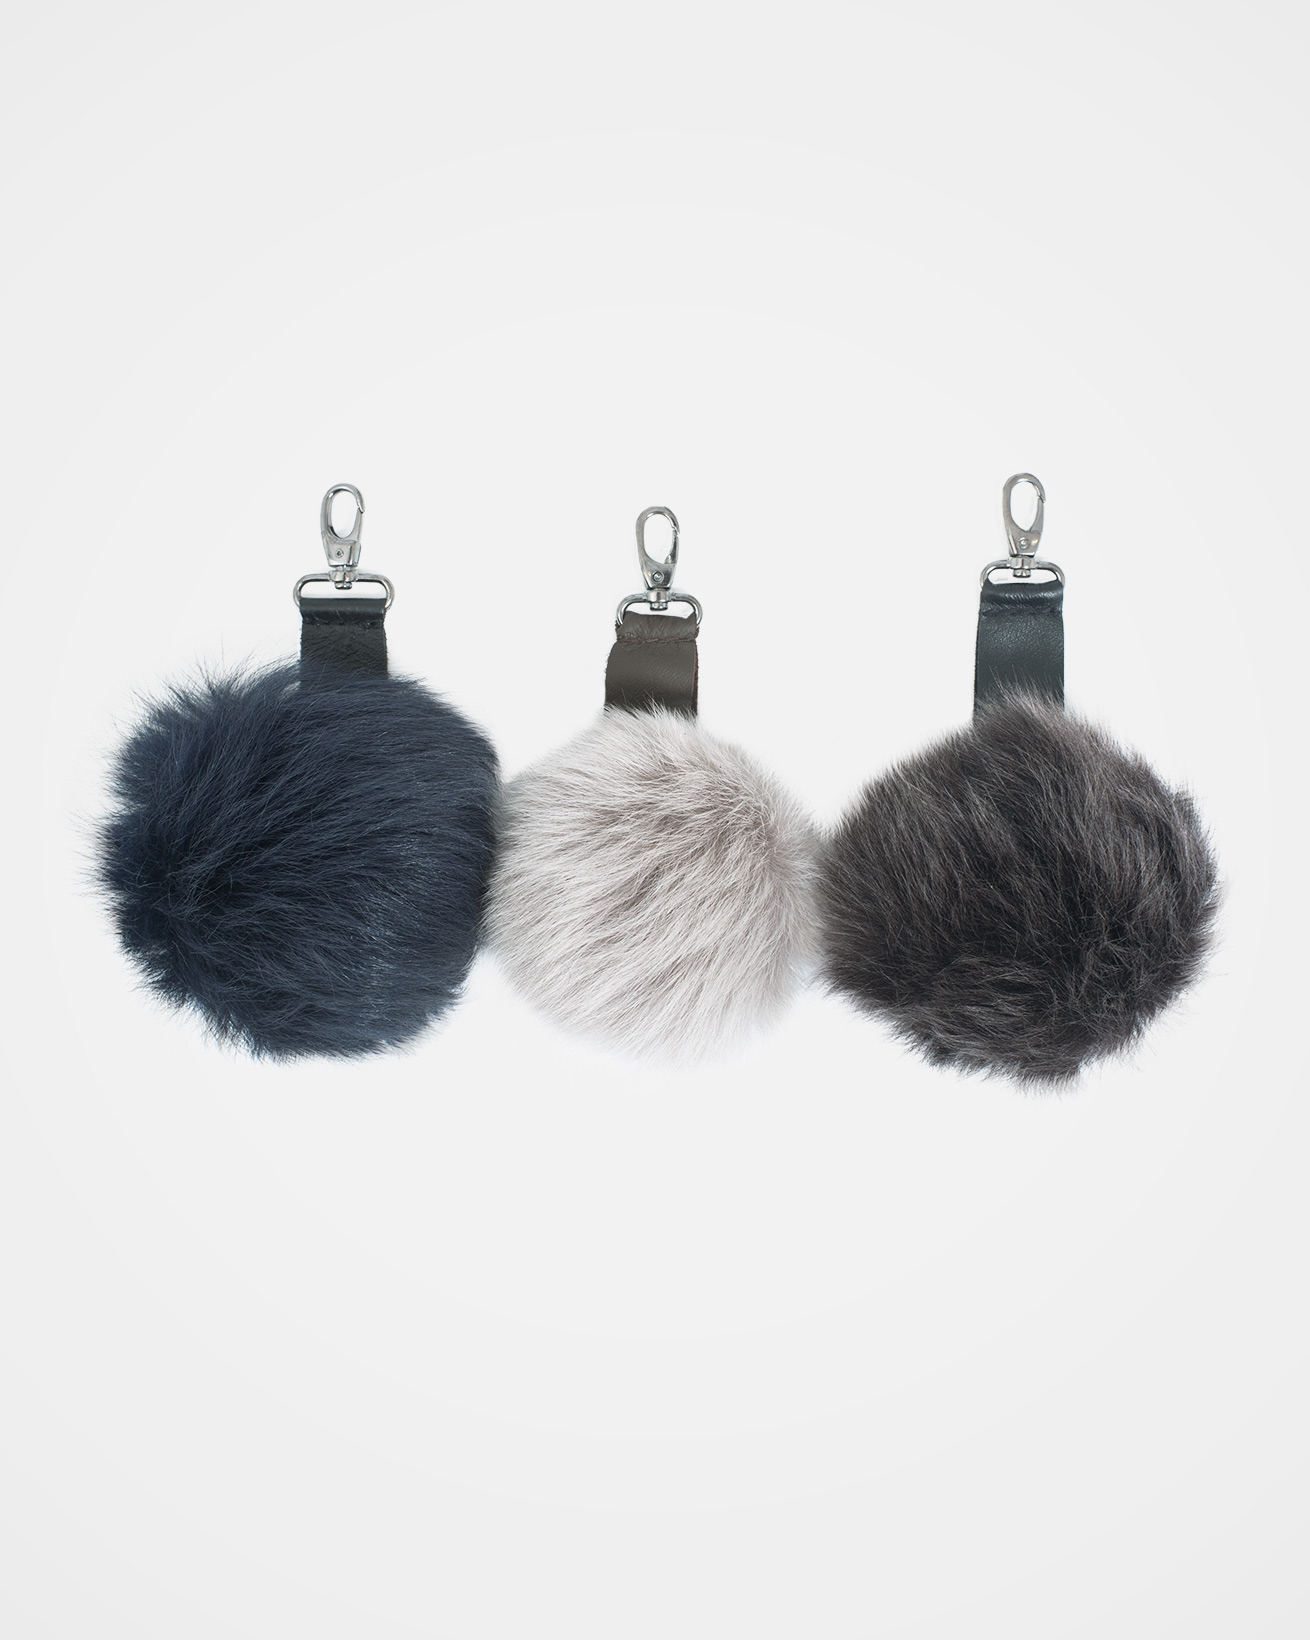 7287_toscana-pom-pom-keyring_bundle-of-3.jpg